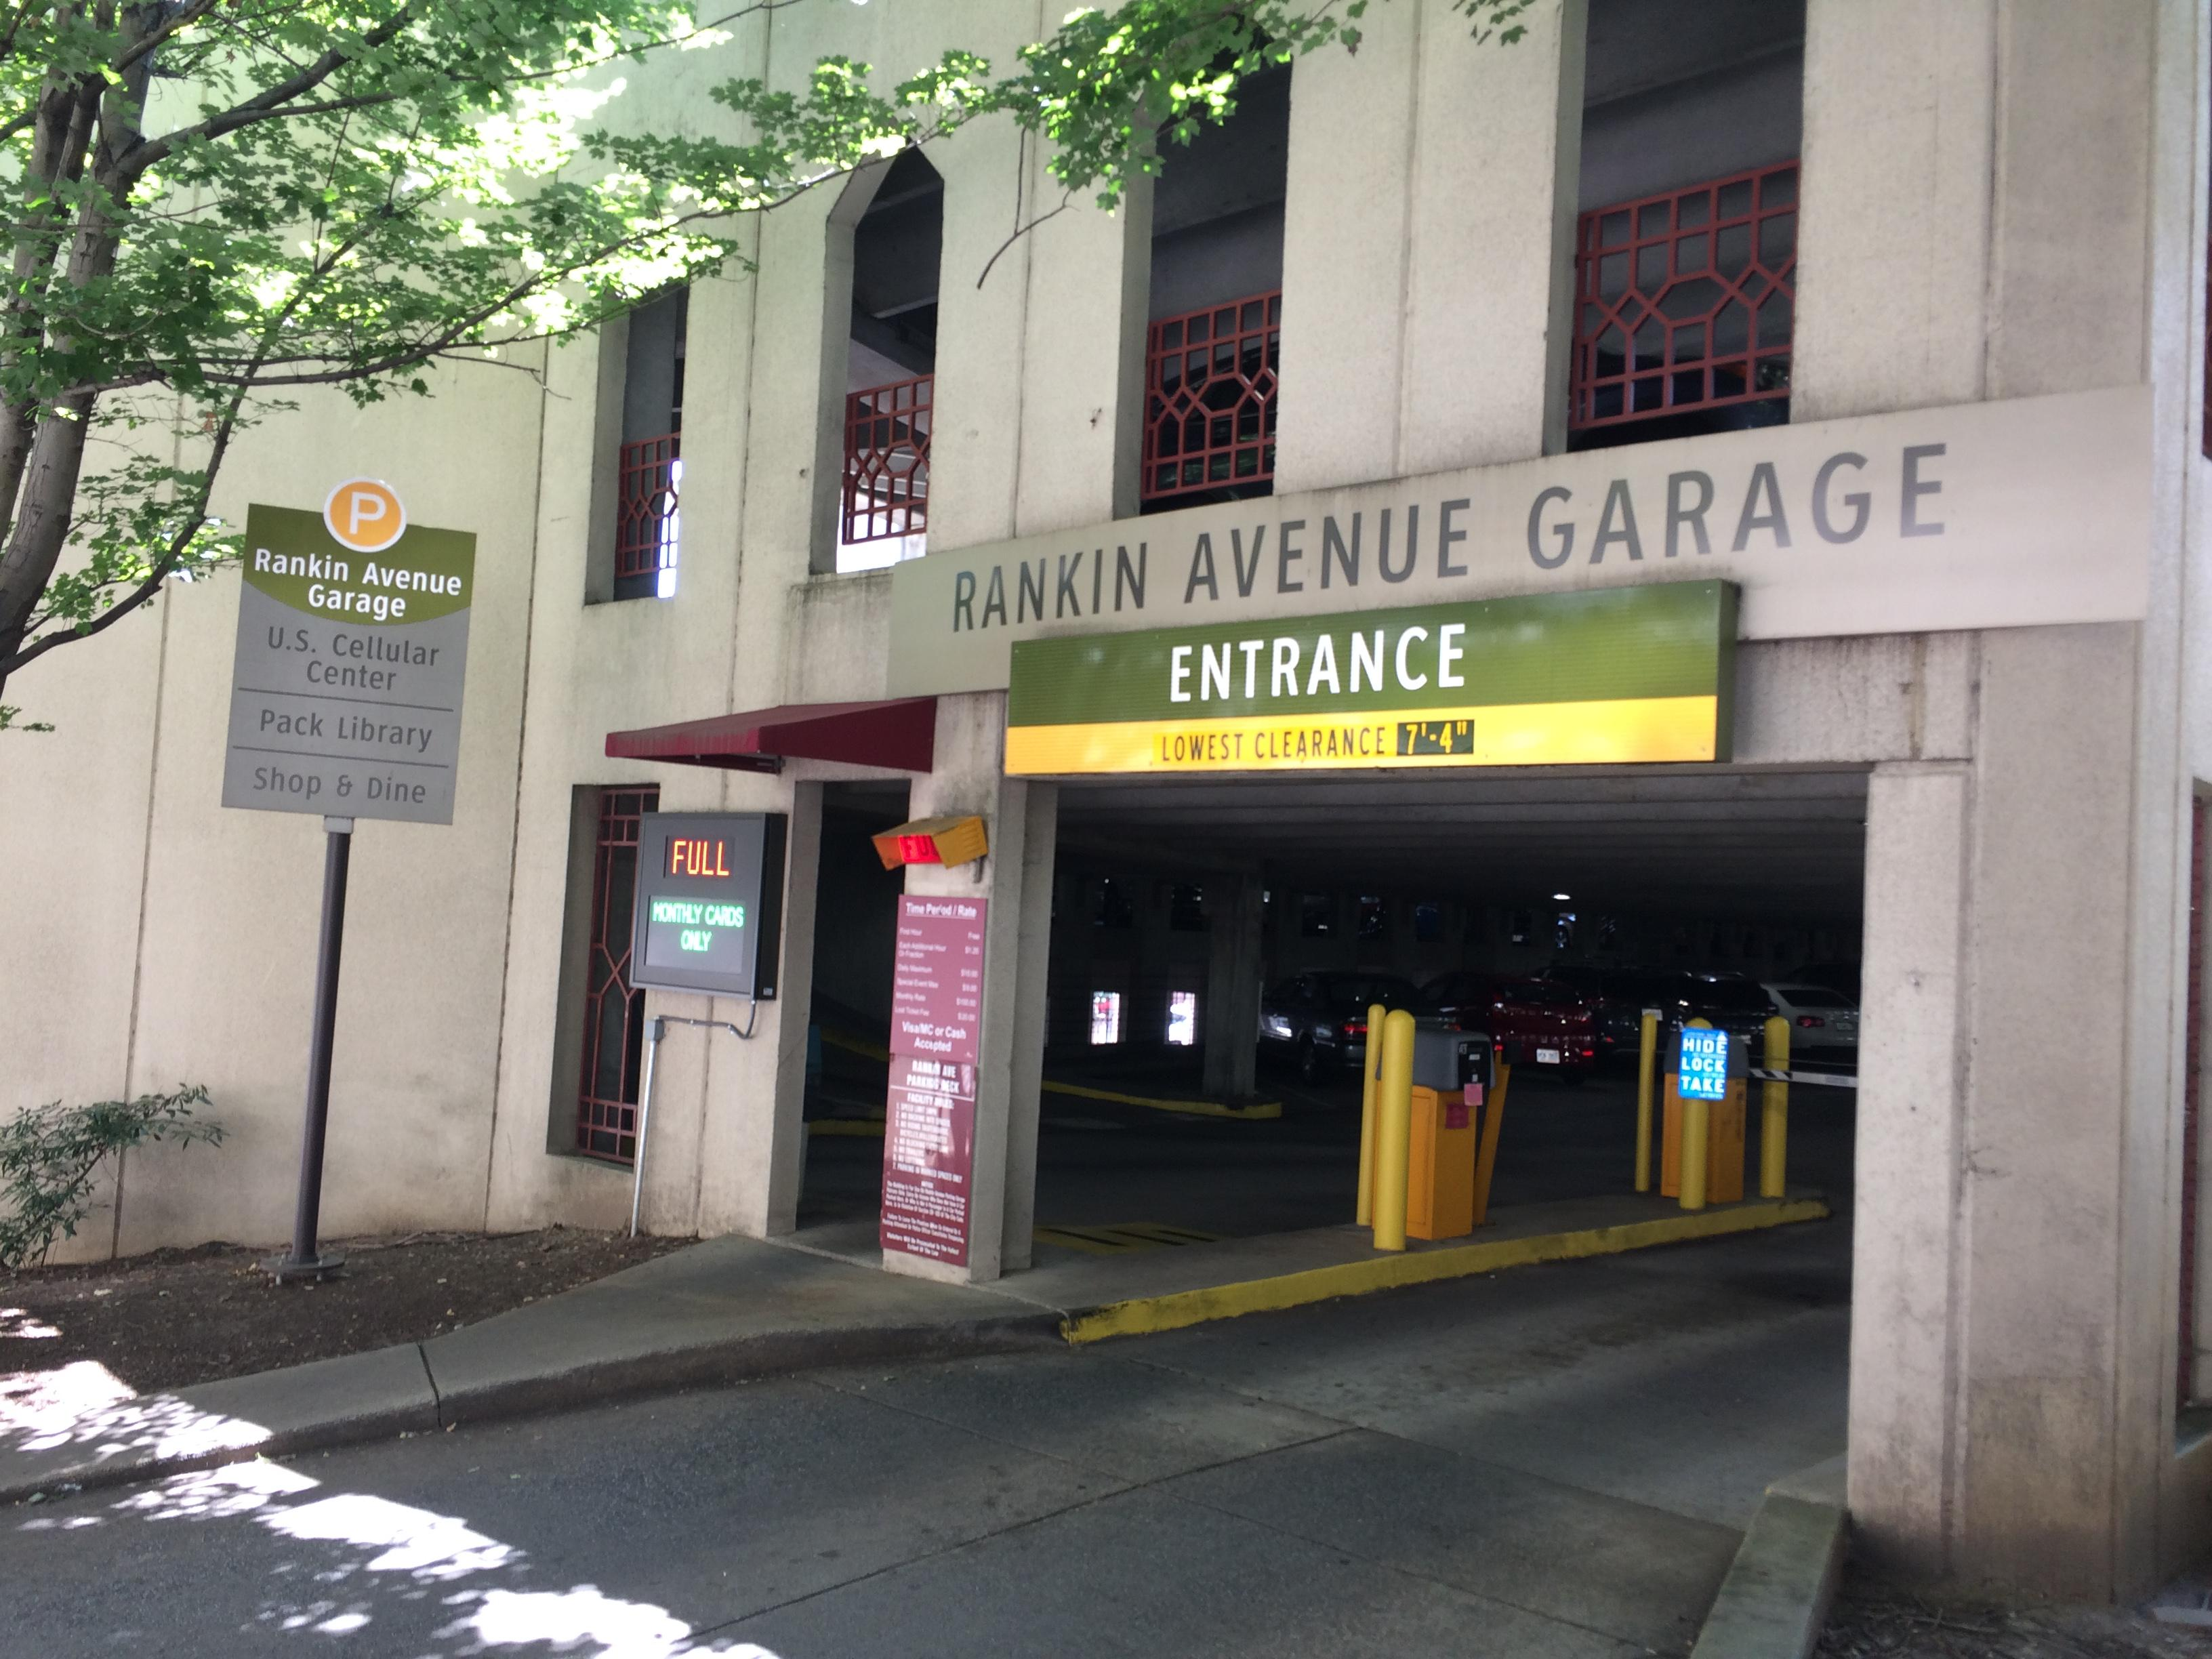 Two phony bills were found in the Rankin parking garage in downtown Asheville on Thursday. (Photo credit: WLOS Staff)